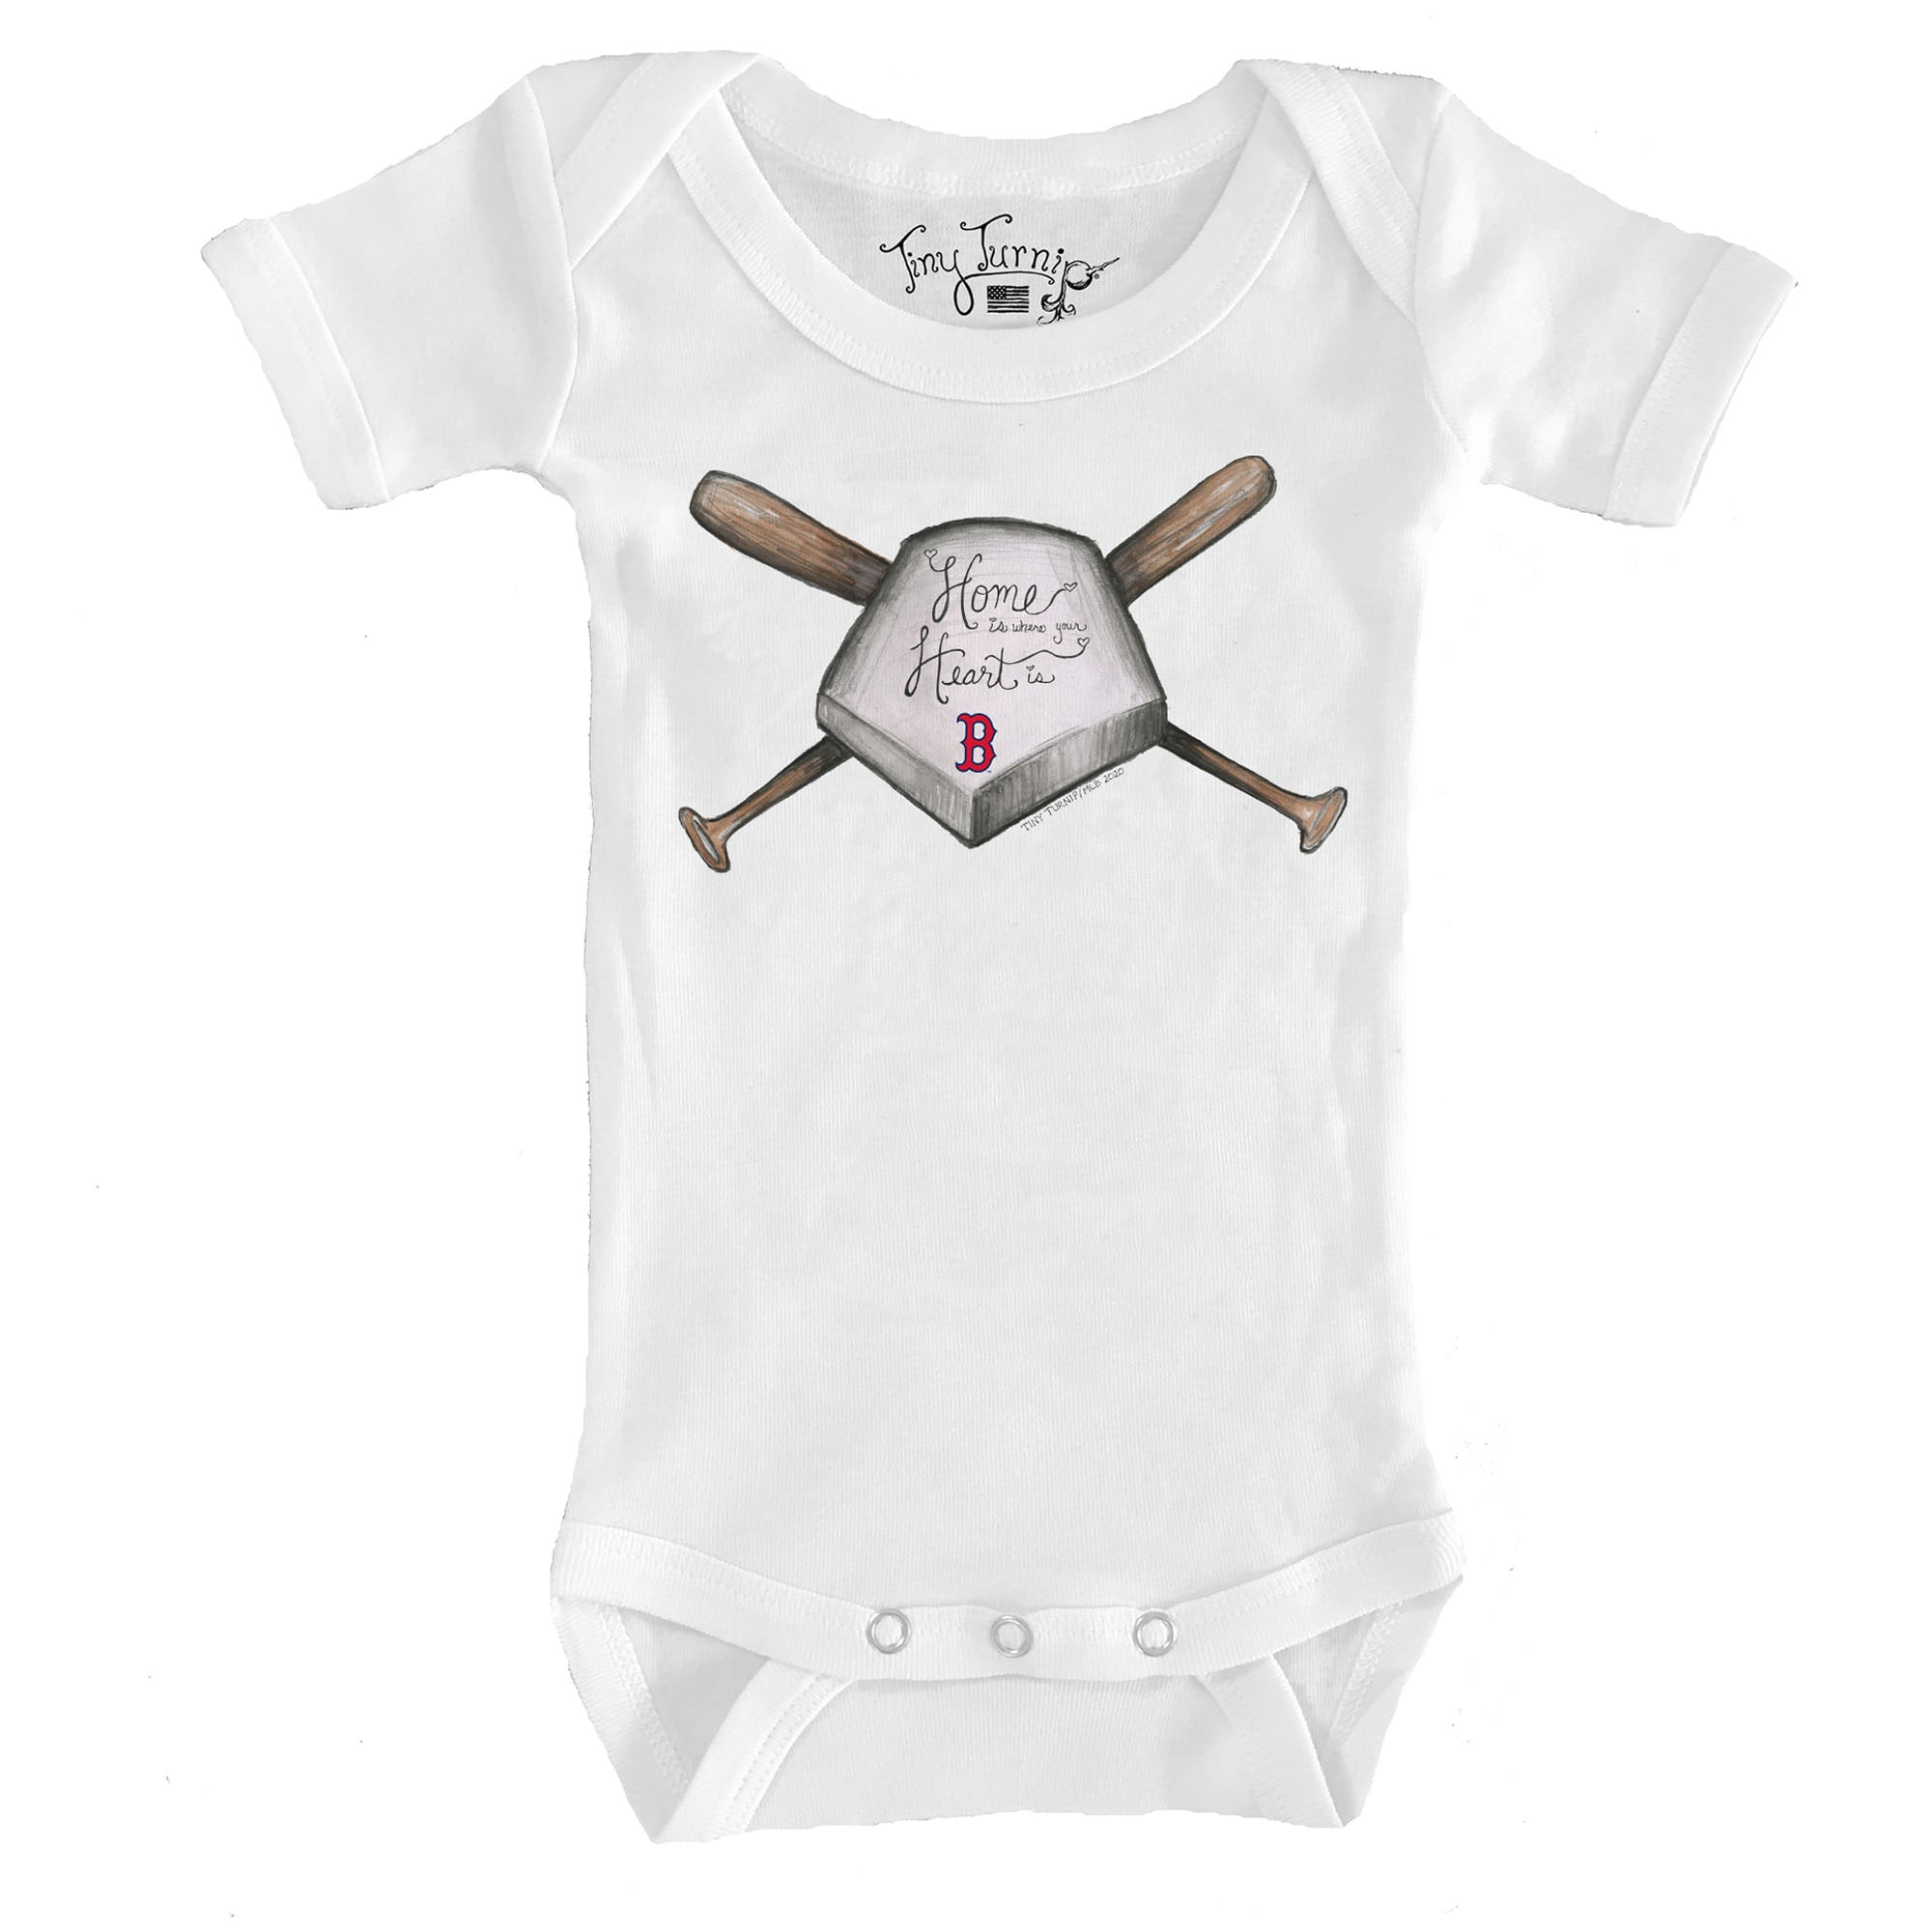 Boston Red Sox Tiny Turnip Infant Home Is Where Your Heart Is Bodysuit - White